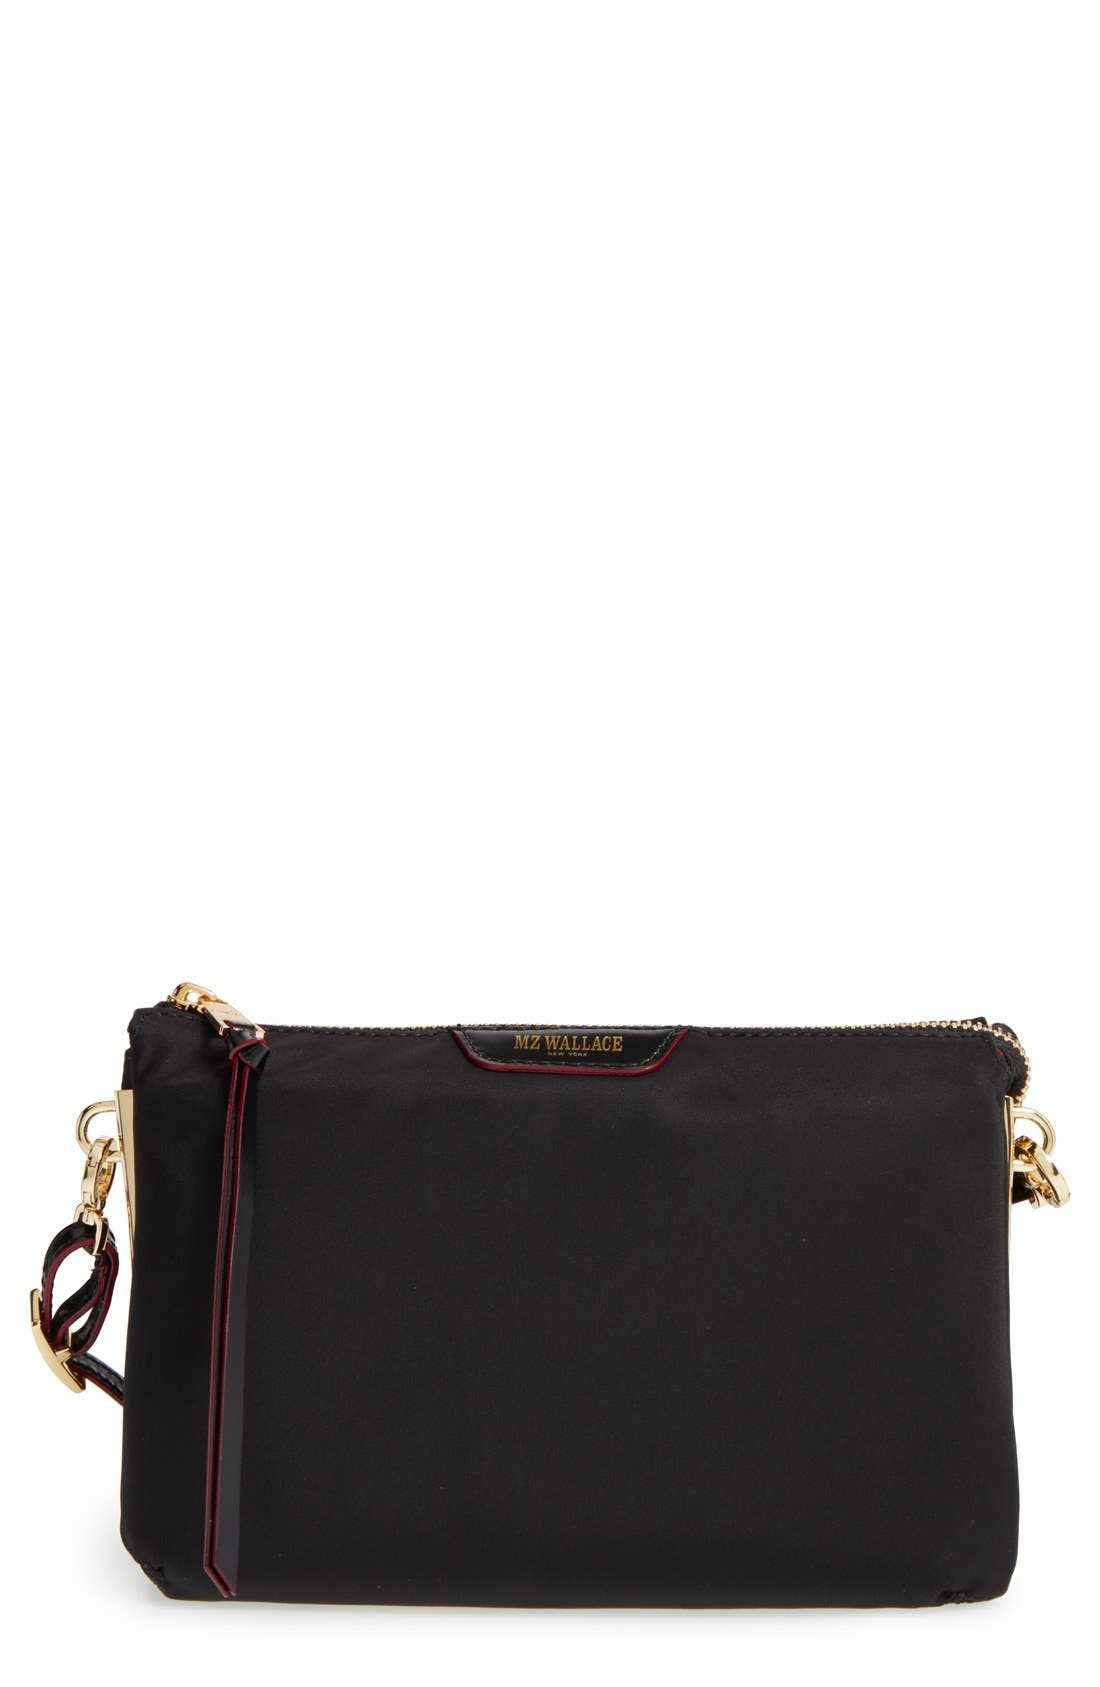 MZ WALLACE 'Pippa' Bedford Nylon Crossbody Bag